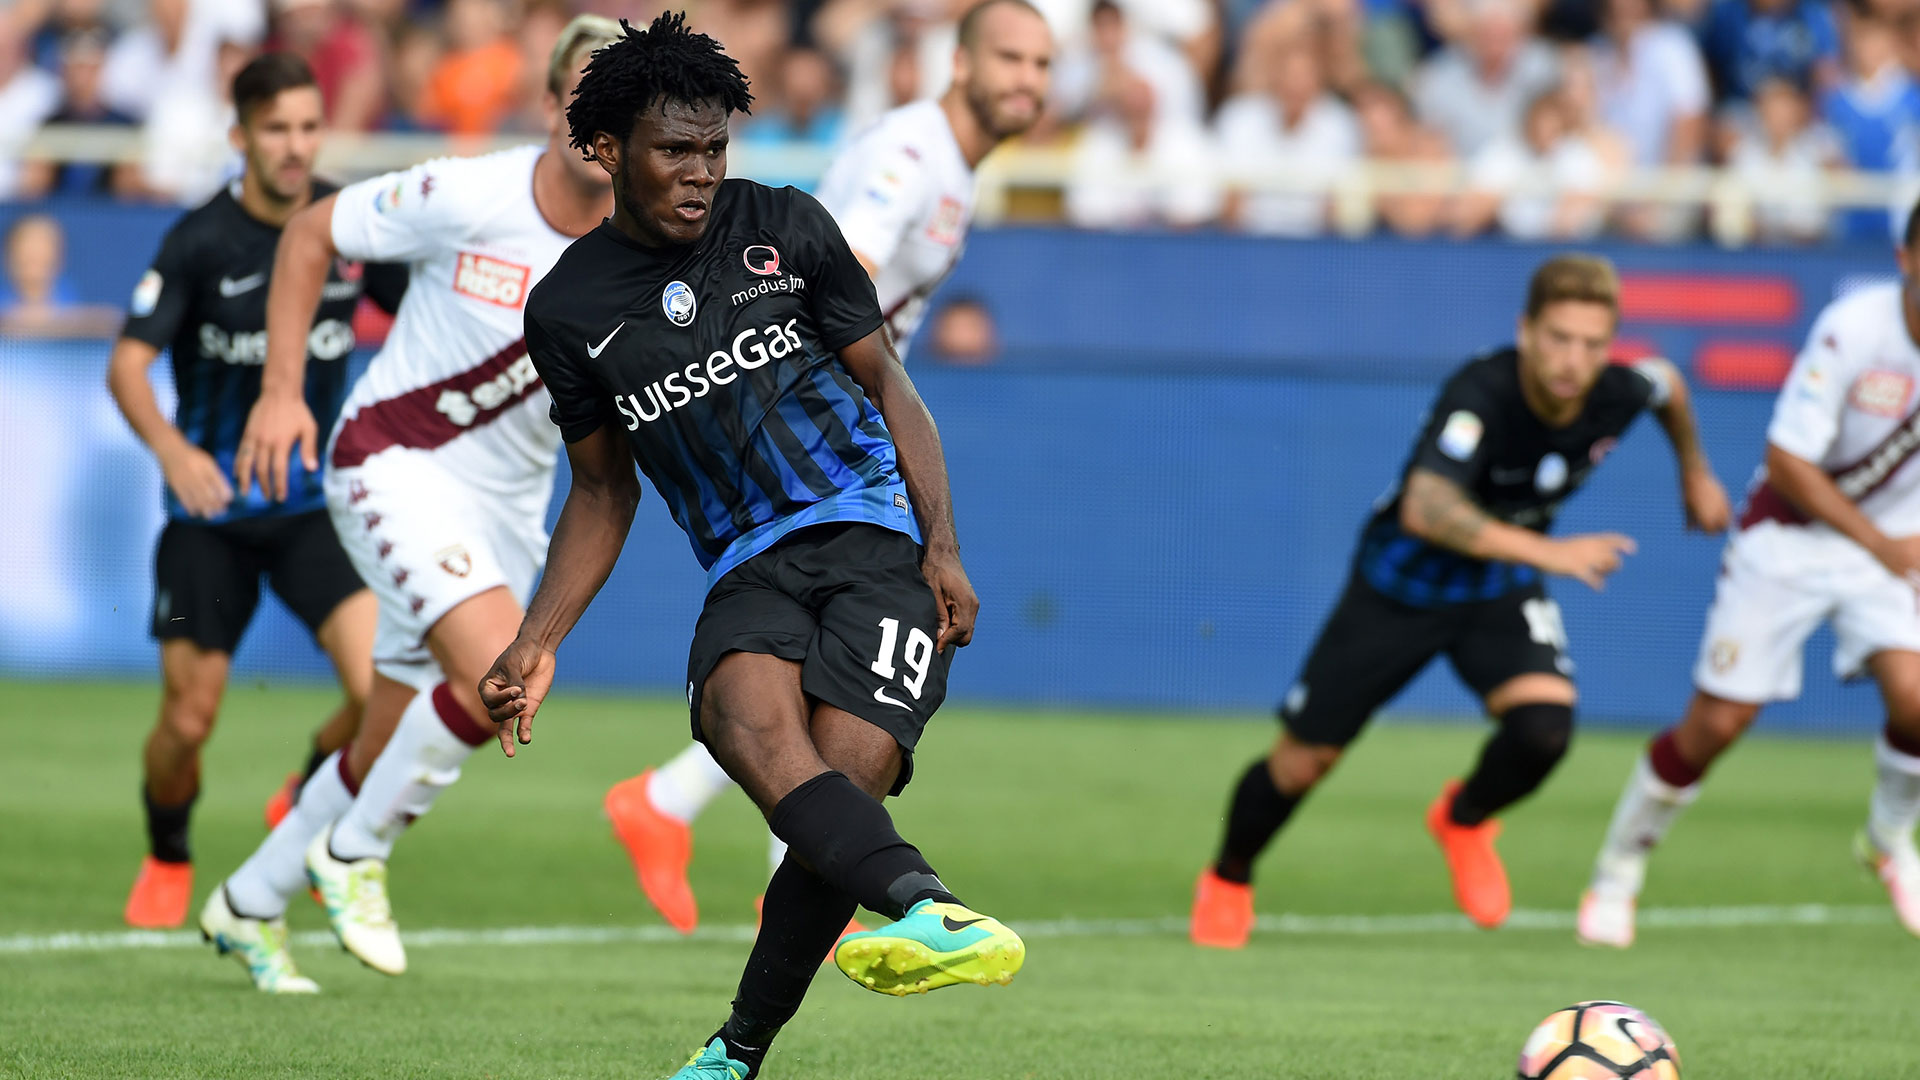 Atalanta vs. AC Milan - Football Match Report